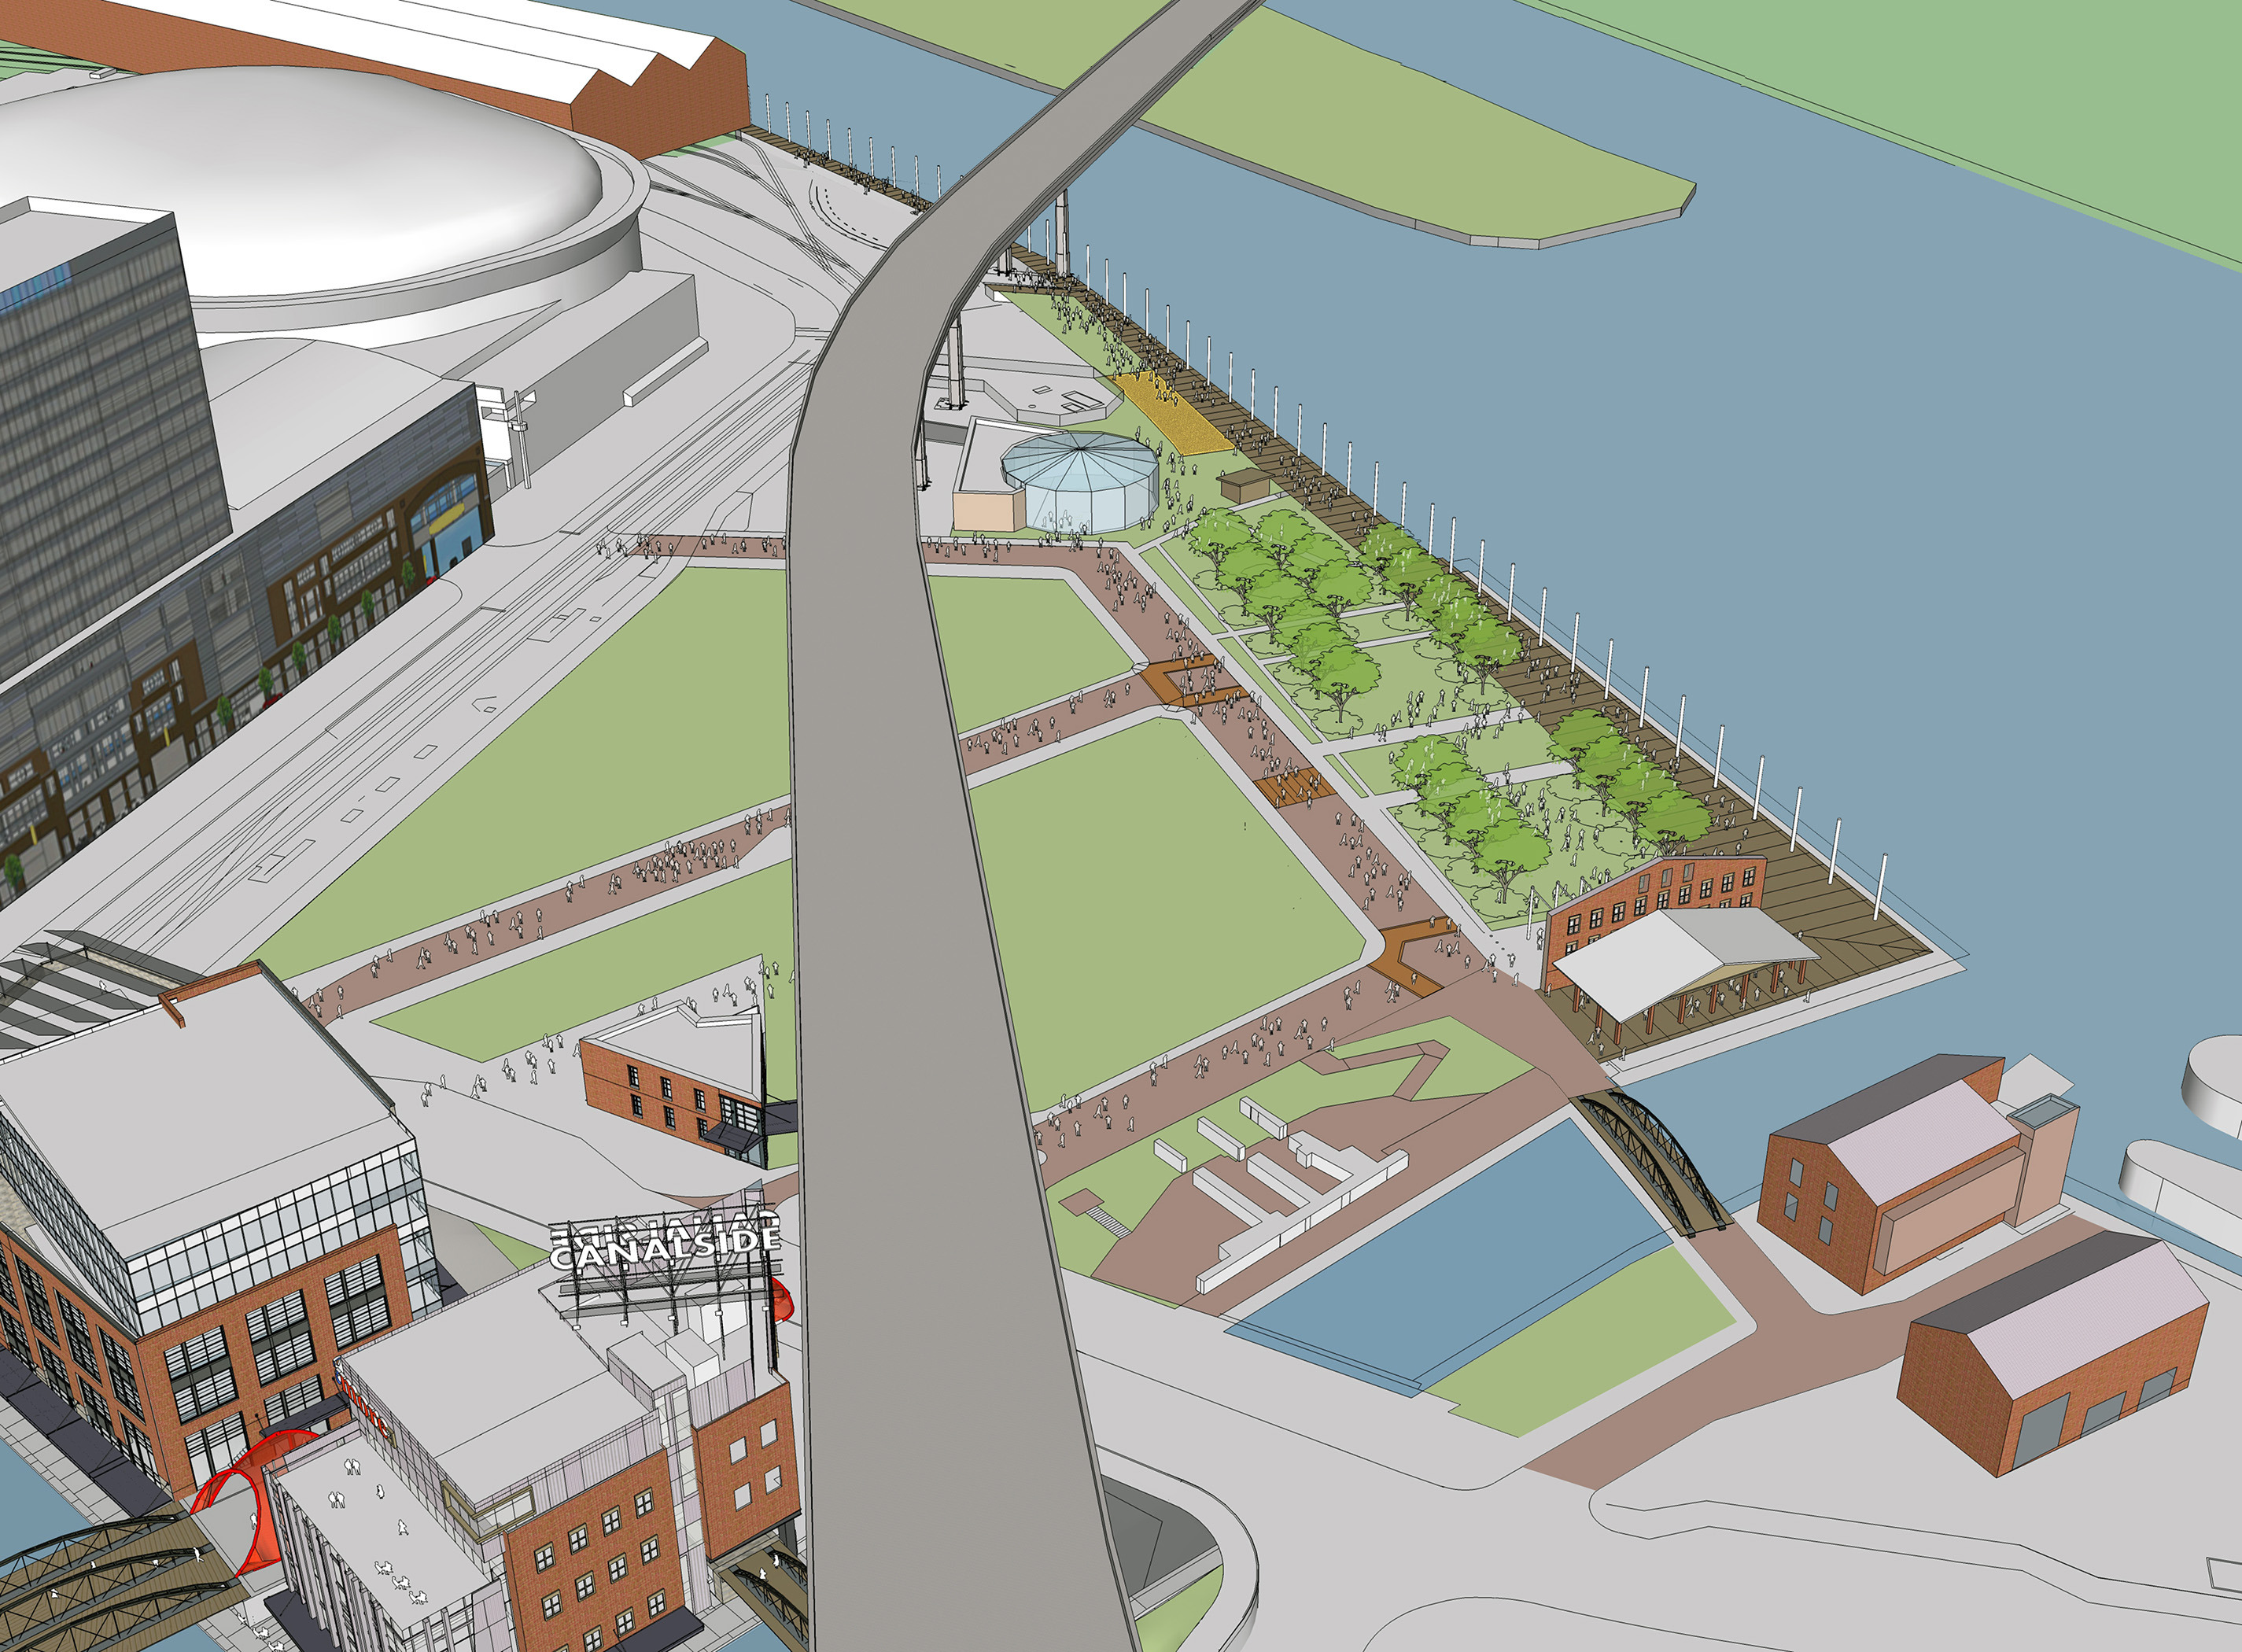 A new concert stage, a children's museum and floating docks are in the works for Canalside, shown here in a rendering.